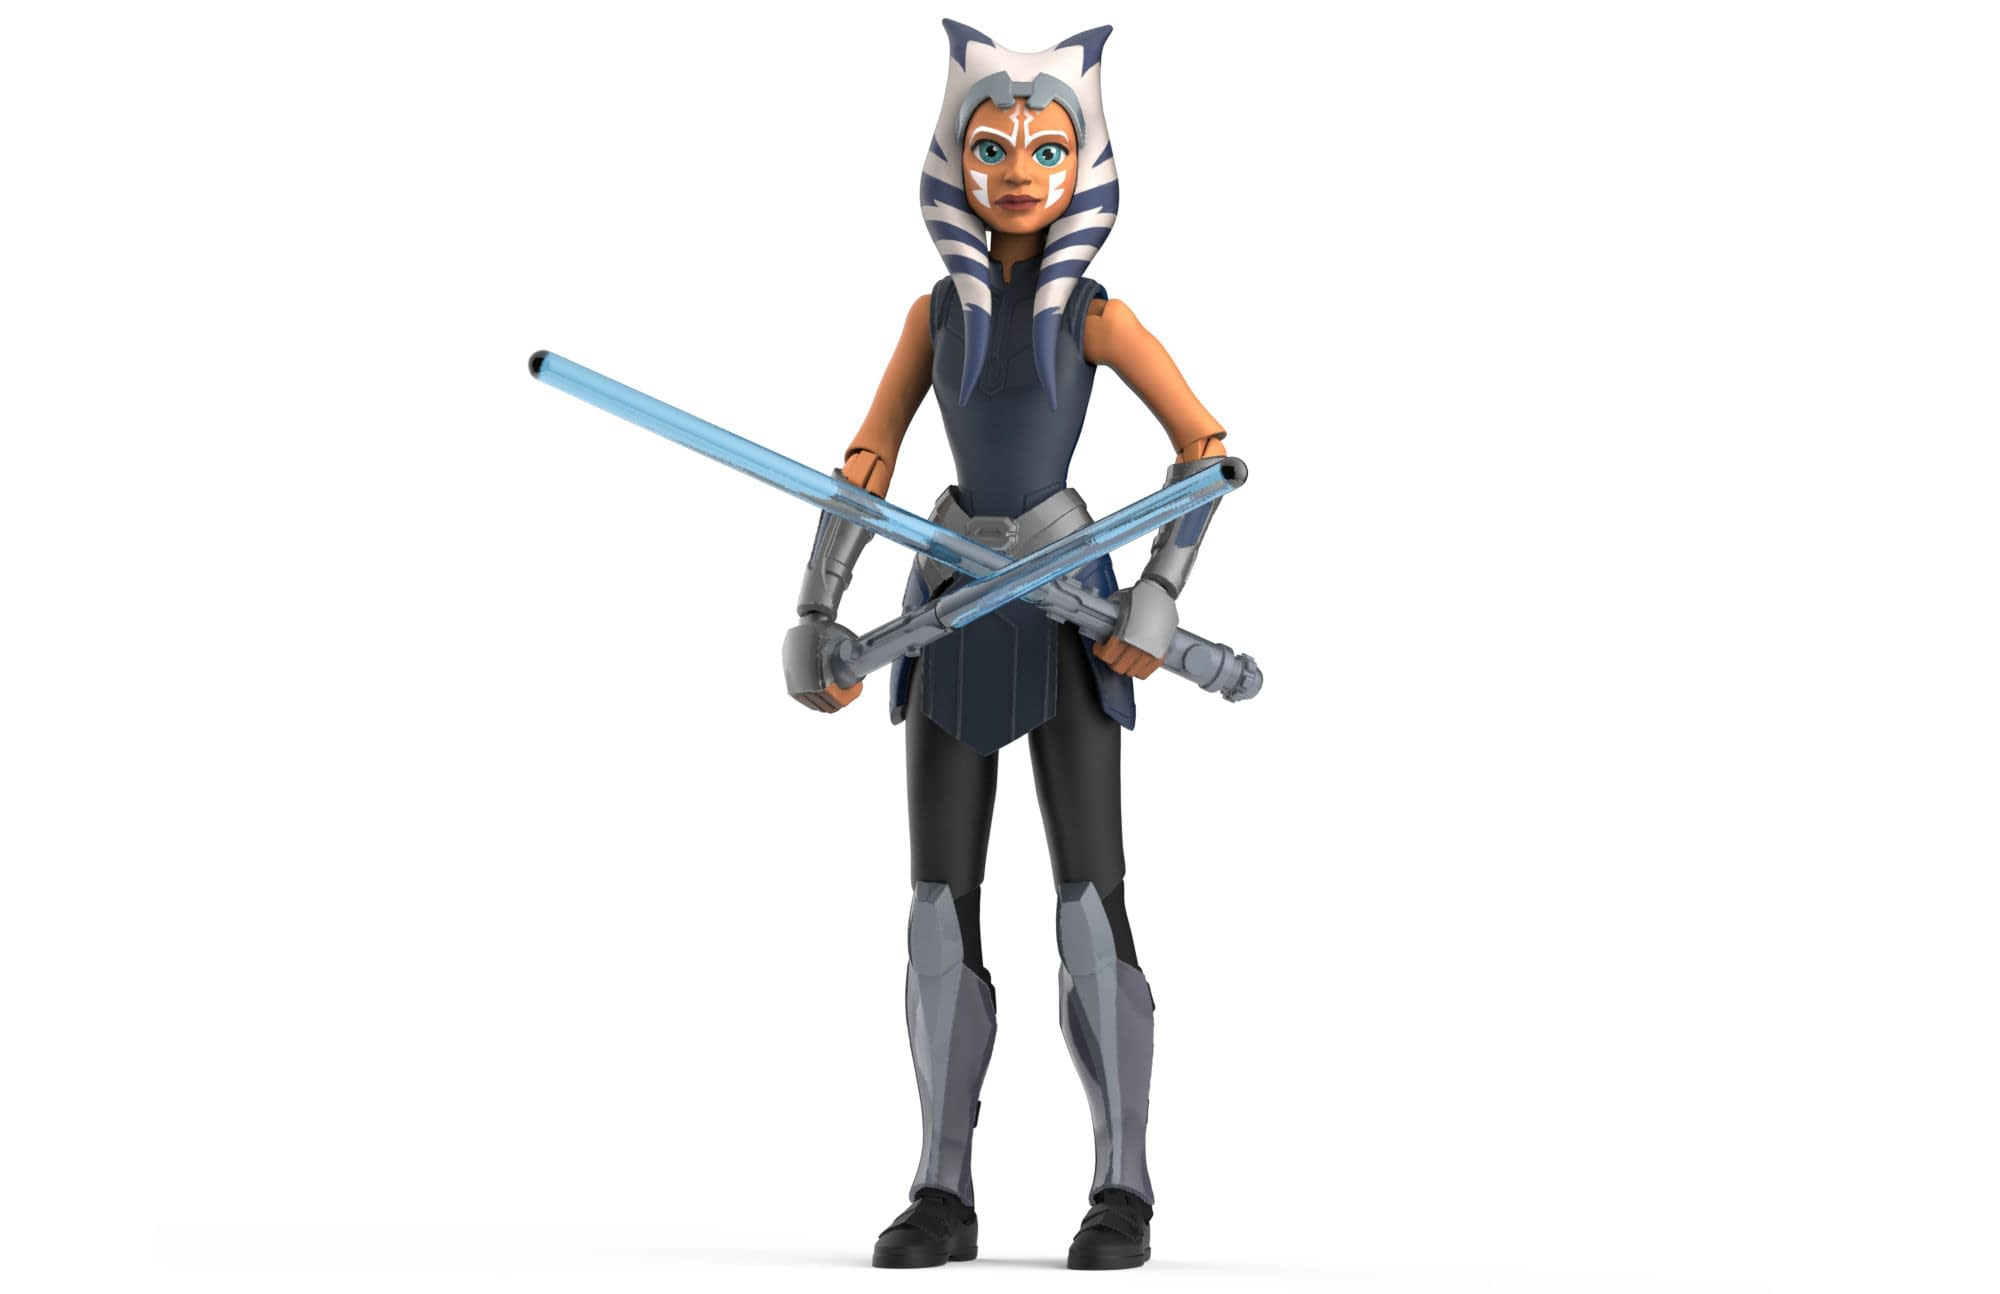 Star Wars: Galaxy of Adventures Gets Two New Hasbro Figures